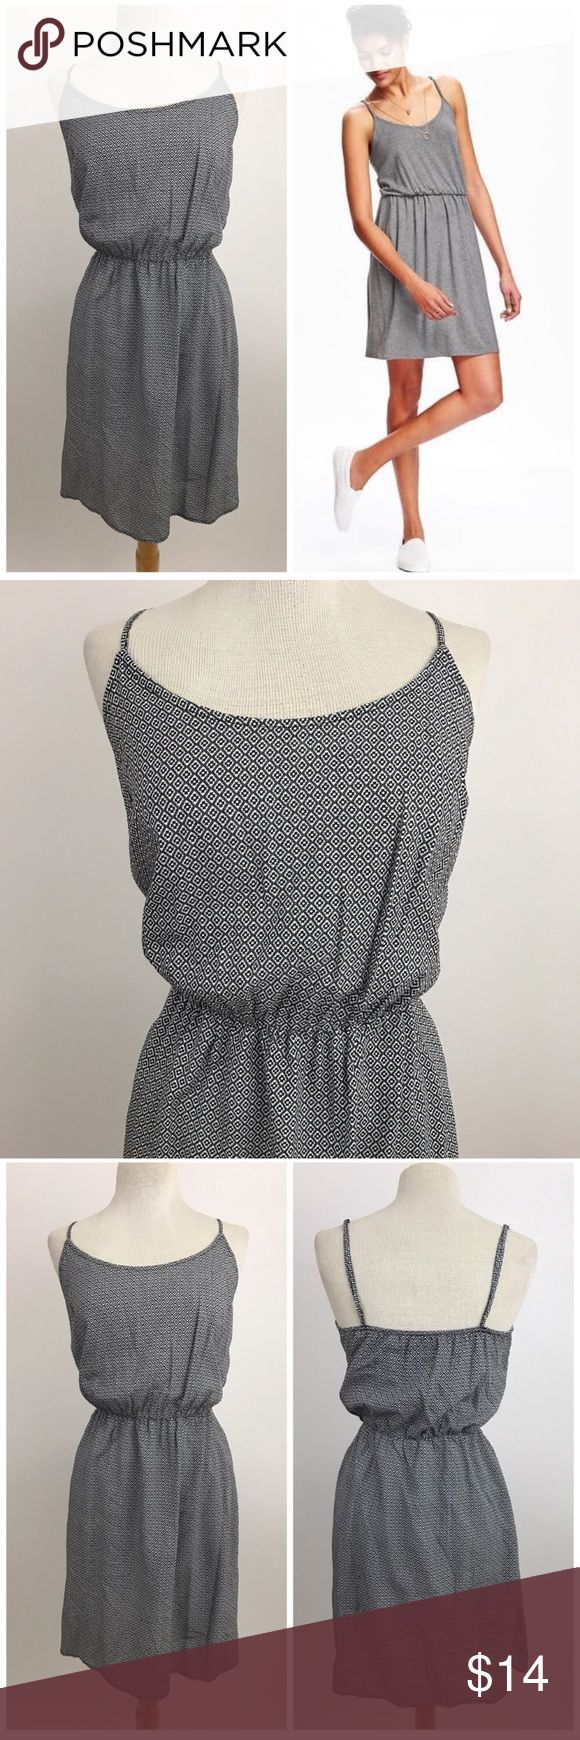 "Old Navy Cami Waisted Dress Light and breezy fitted dress from Old Navy. Adjustable spaghetti straps, cinched waist. White and black pattern.  Size medium  Waist 13"" Length 32""  Model is wearing same dress different pattern. Listed for fit reference.  Now accepting offers on bundles ! One low shipping rate no matter how many pieces are bundled 💕 Old Navy Dresses Midi"